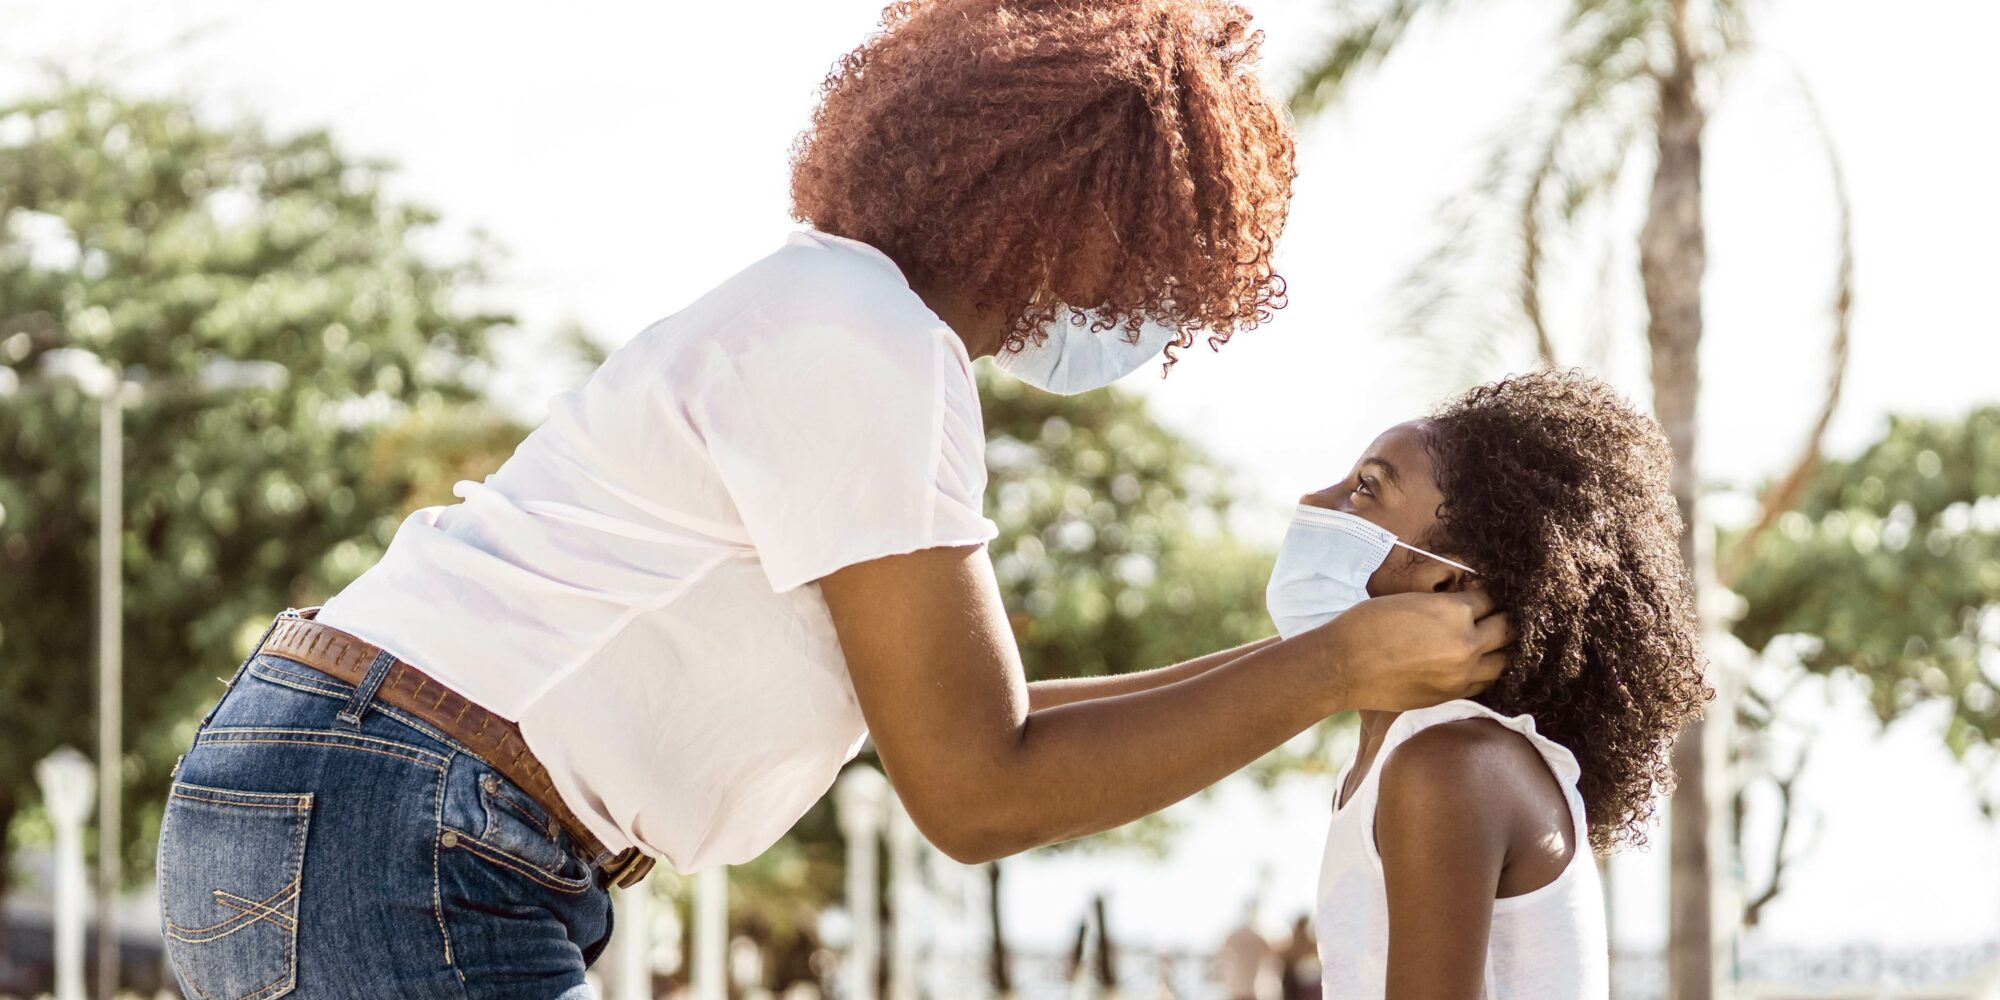 Running A Brand While Parenting Is Hard. The Pandemic Made It Harder. Here's How Beauty Entrepreneurs With Kids Are Handling It All Now.